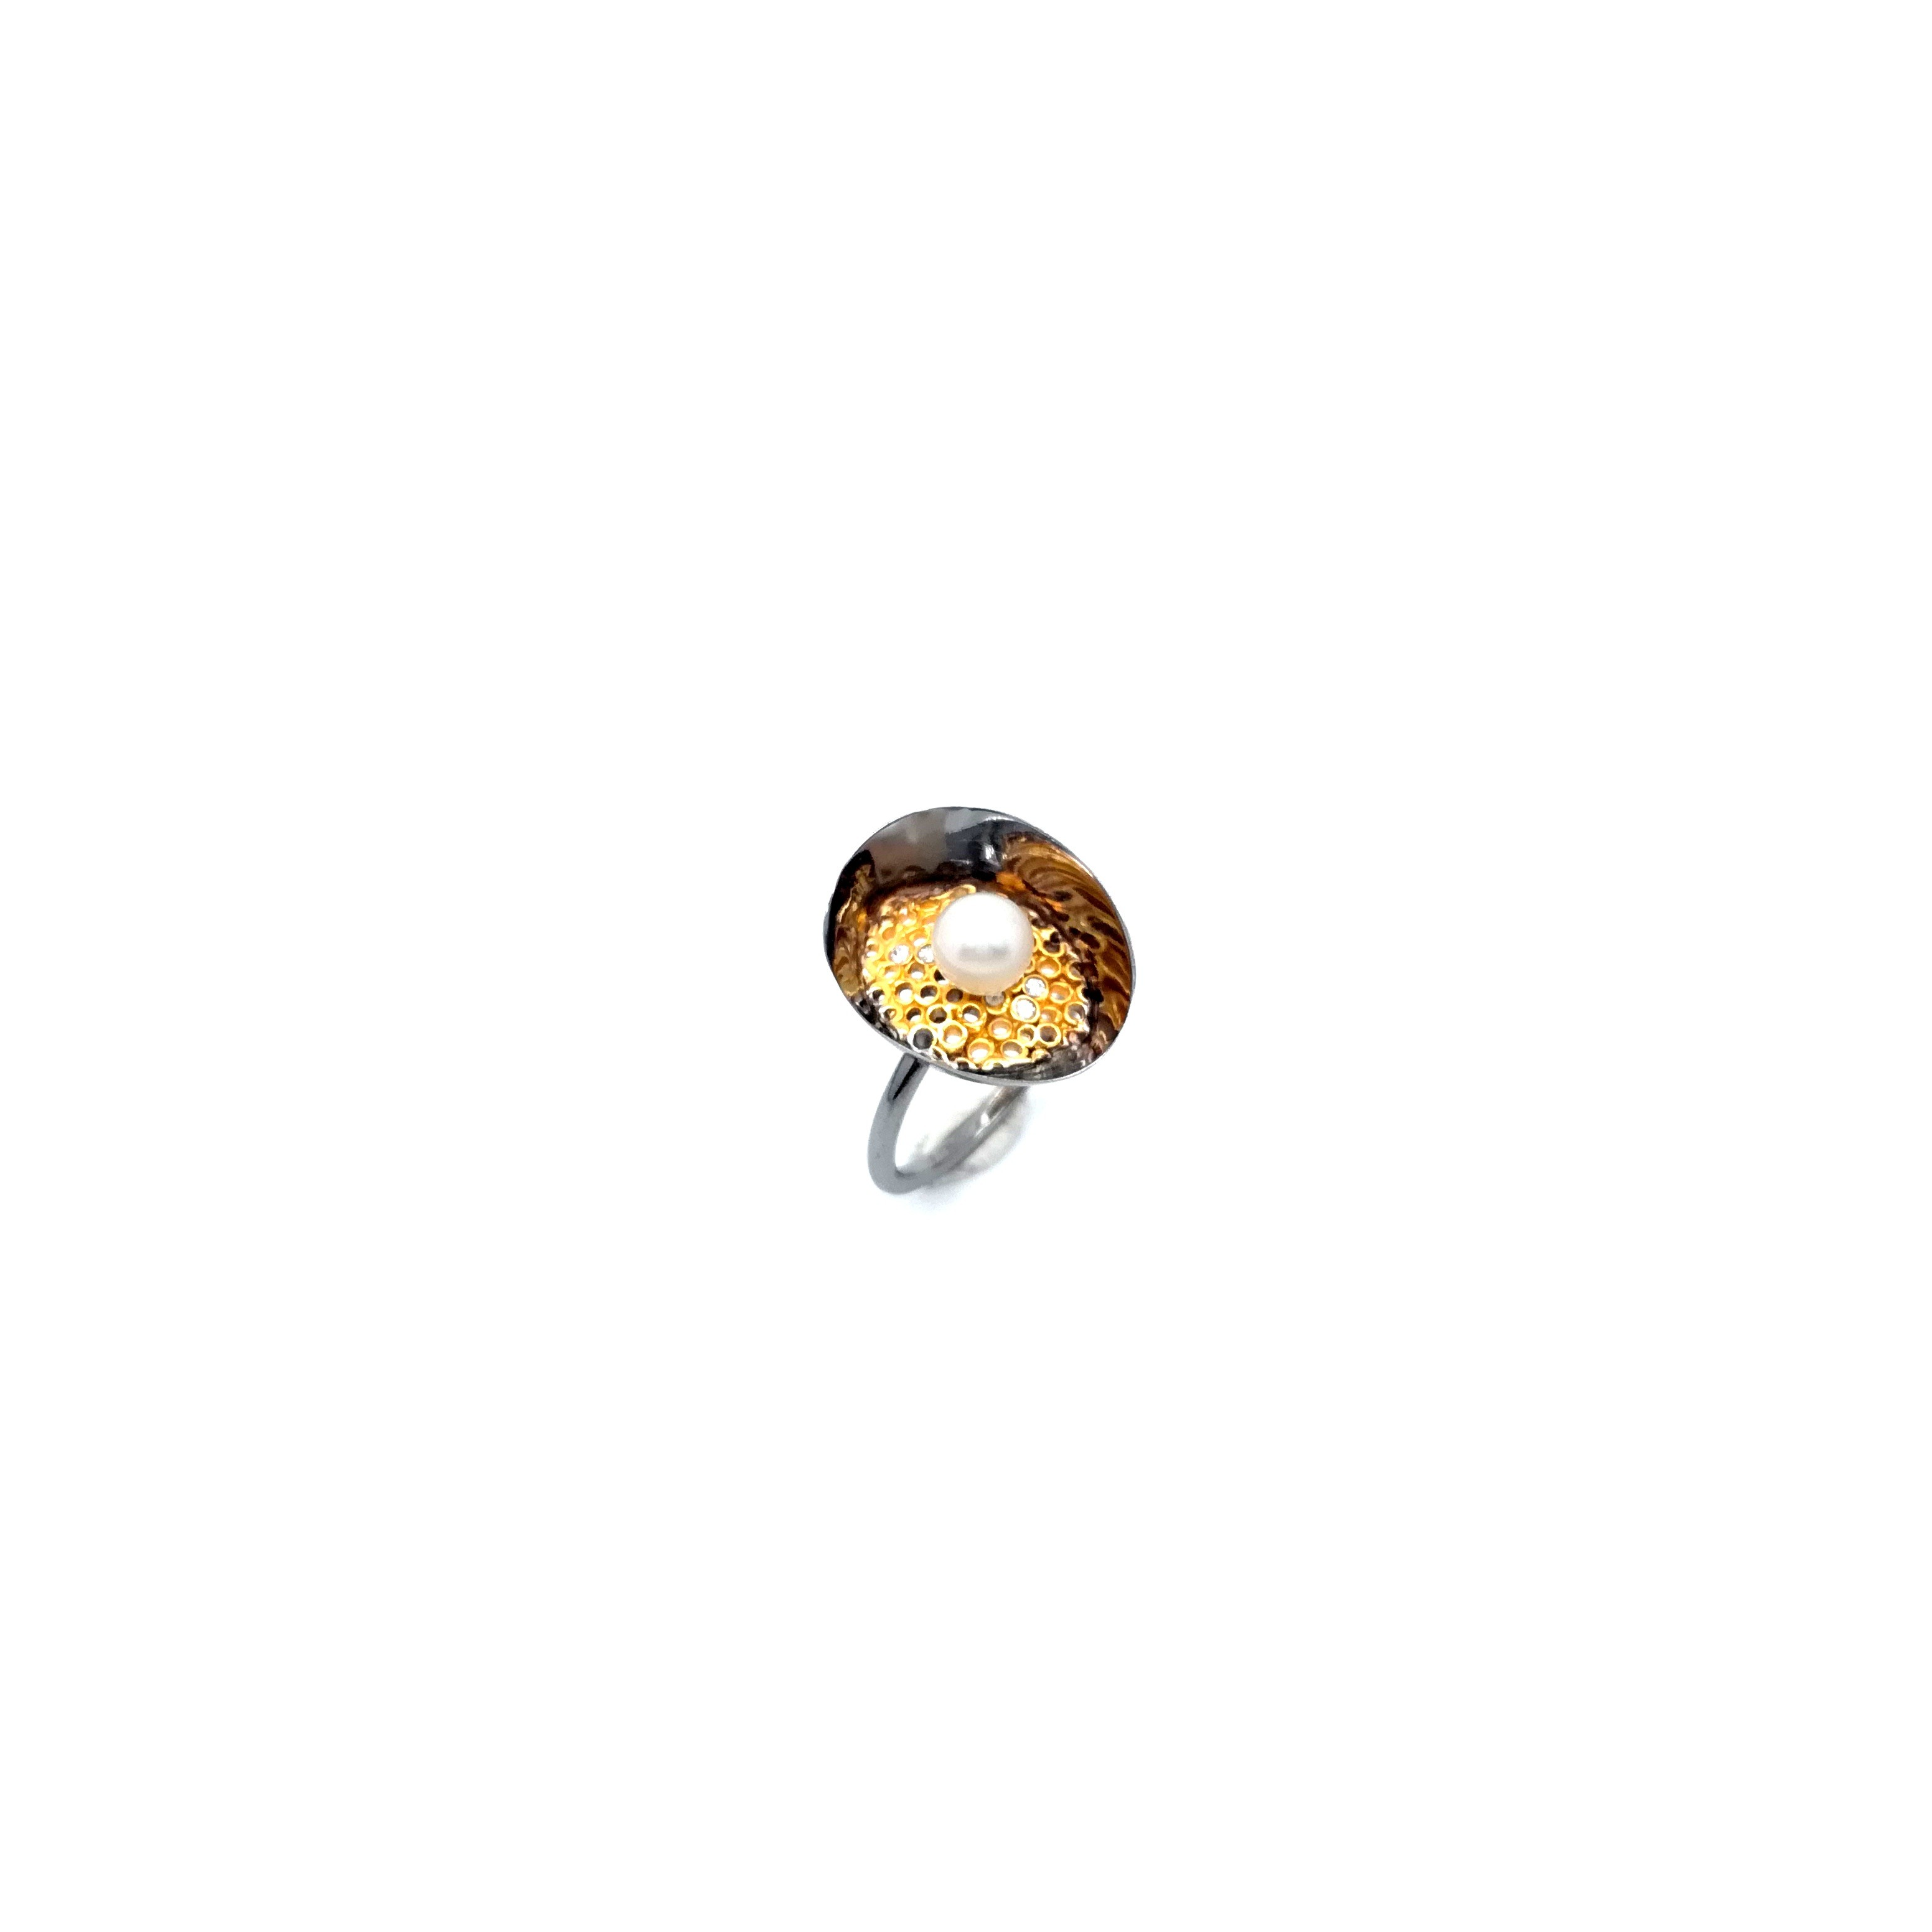 Silver ring 925 black rhodium and gold plated with pearl and synthetic stones